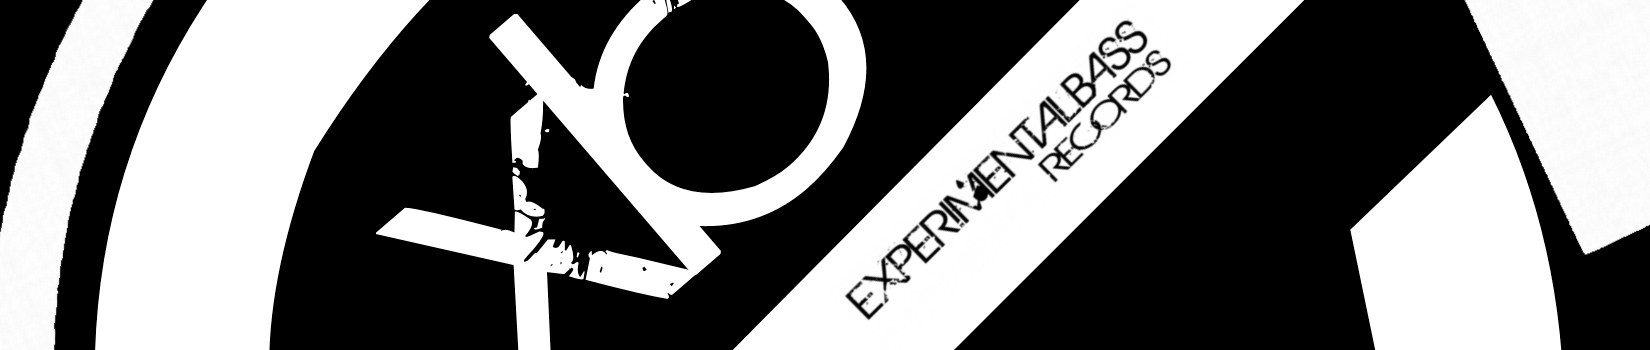 ExperimentalBassRecords